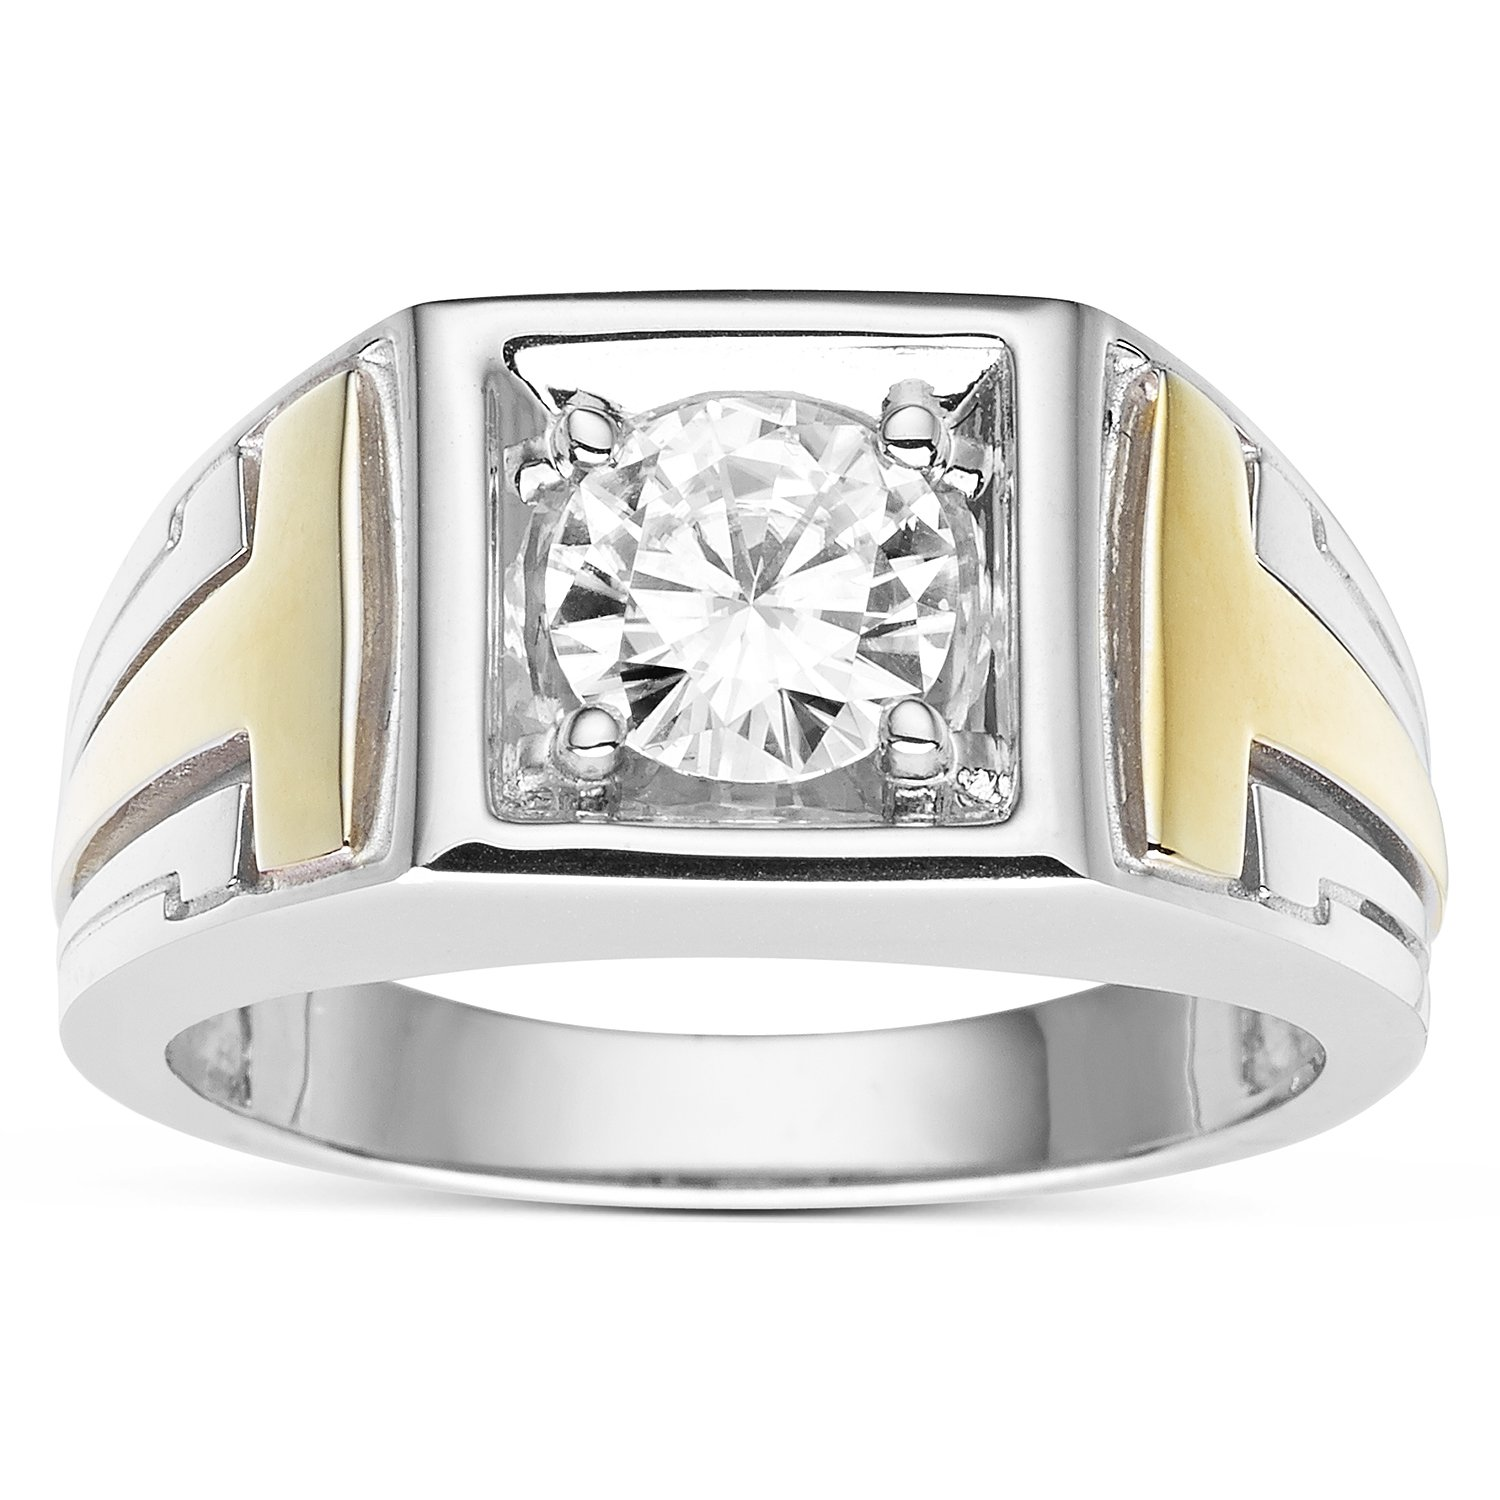 Forever Classic Men�s Round 7.0mm Moissanite Wedding Band-size 11, 1.20ct DEW By Charles & Colvard by Charles & Colvard